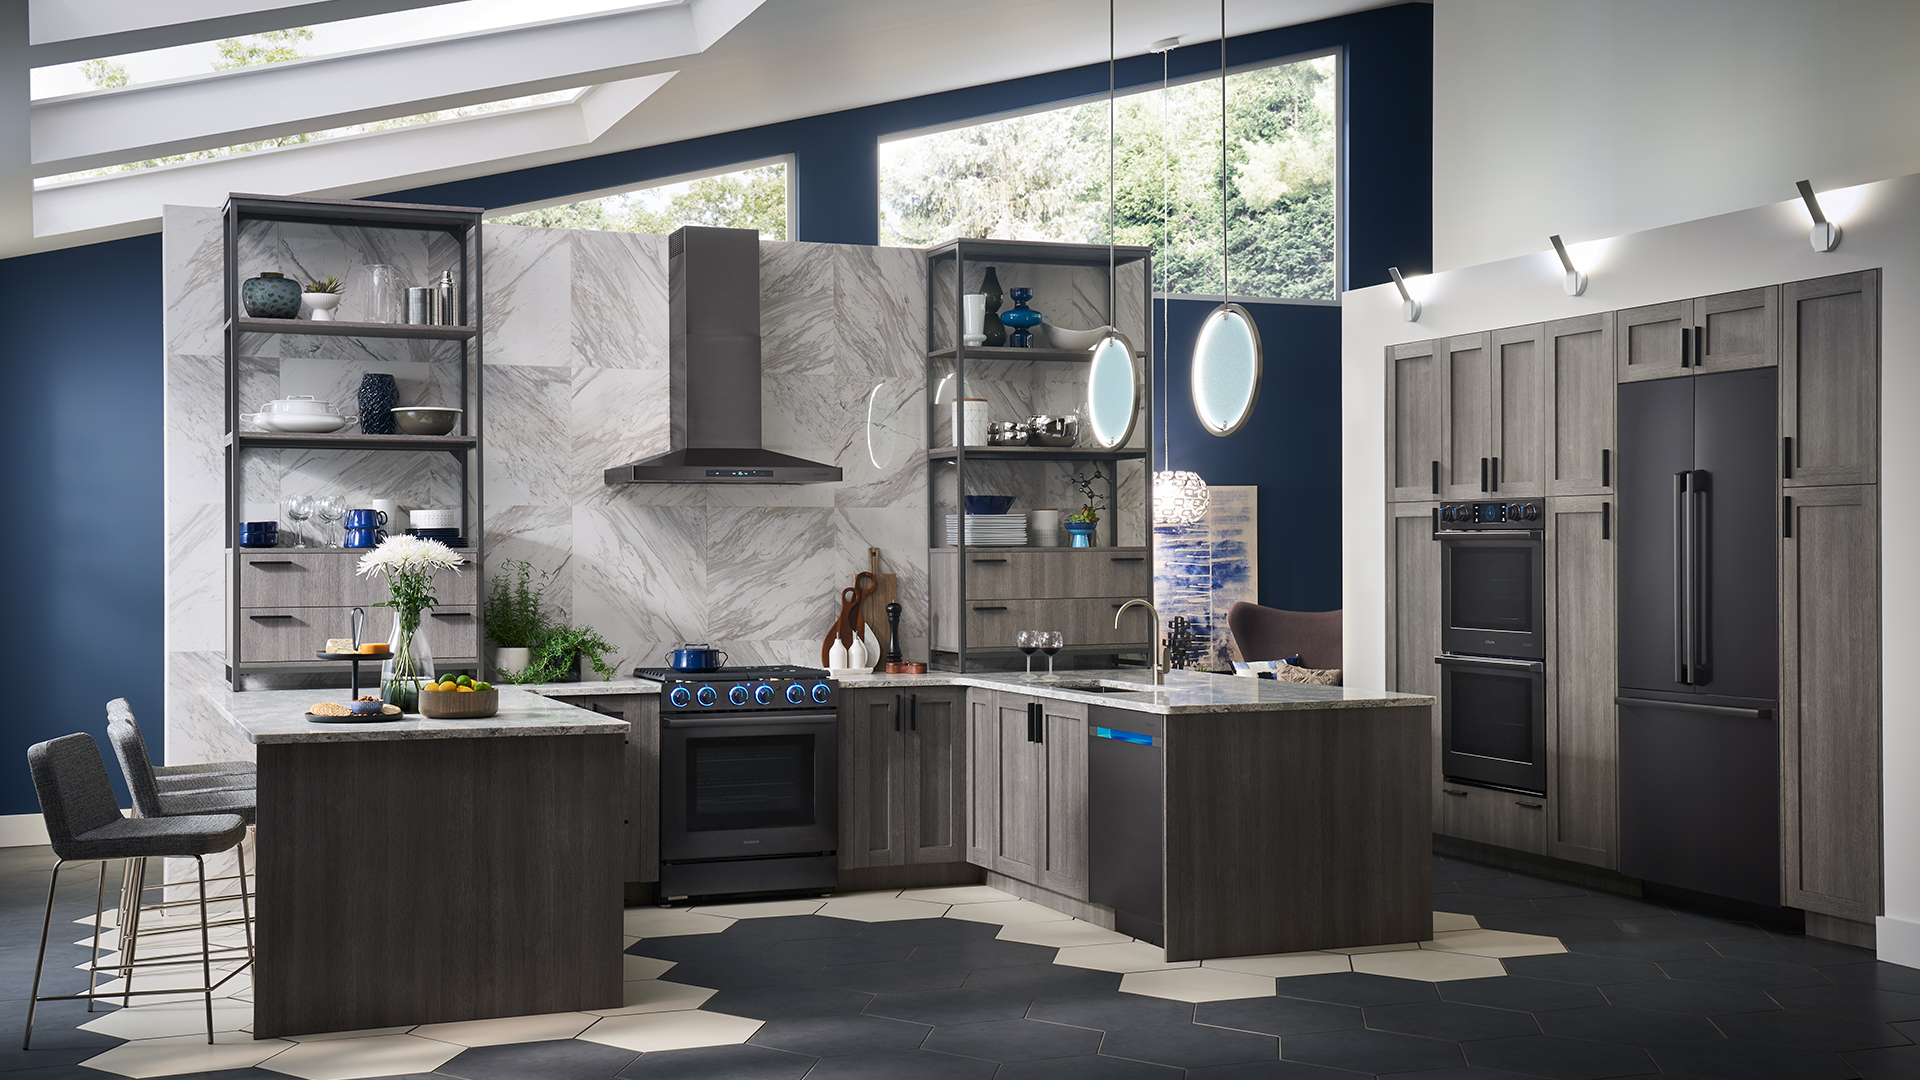 The Modern Kitchen Designed For Real Life Samsung Showcases Latest Home Appliance Innovations At The 2018 Architectural Digest Design Show Business Wire